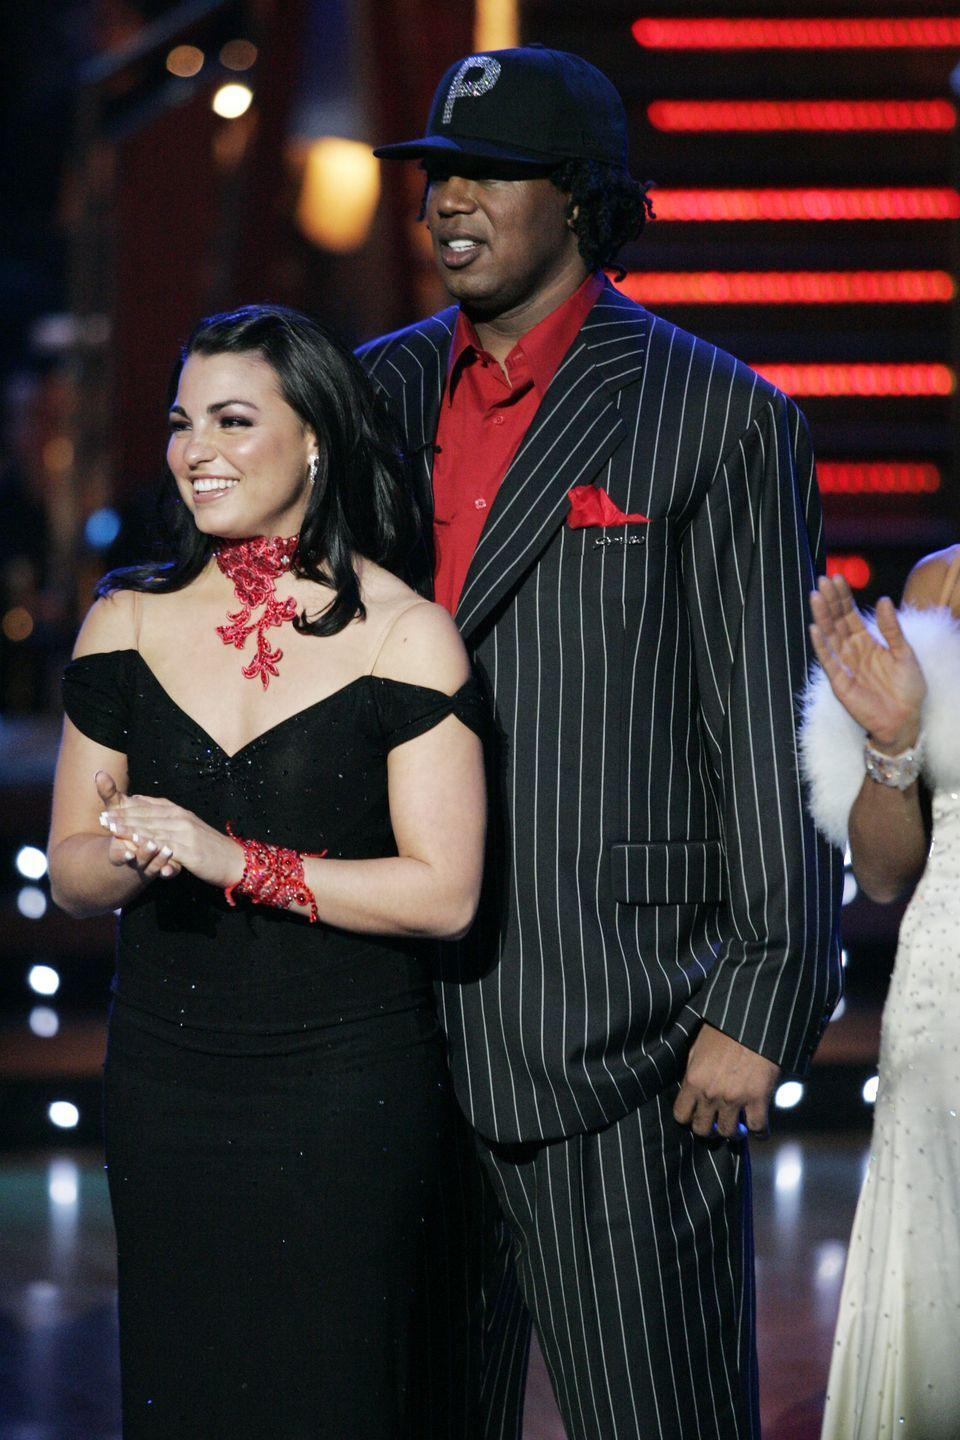 <p>Master P joined the show in season 2 as a replacement for his son, Romeo, who dropped out due to an injury. Unfortunately, the father's nice gesture was derailed by his lack of dance skills. After a stiff paso doble routine, the musician received the lowest score ever given on the show: 8/30. Ouch.</p>